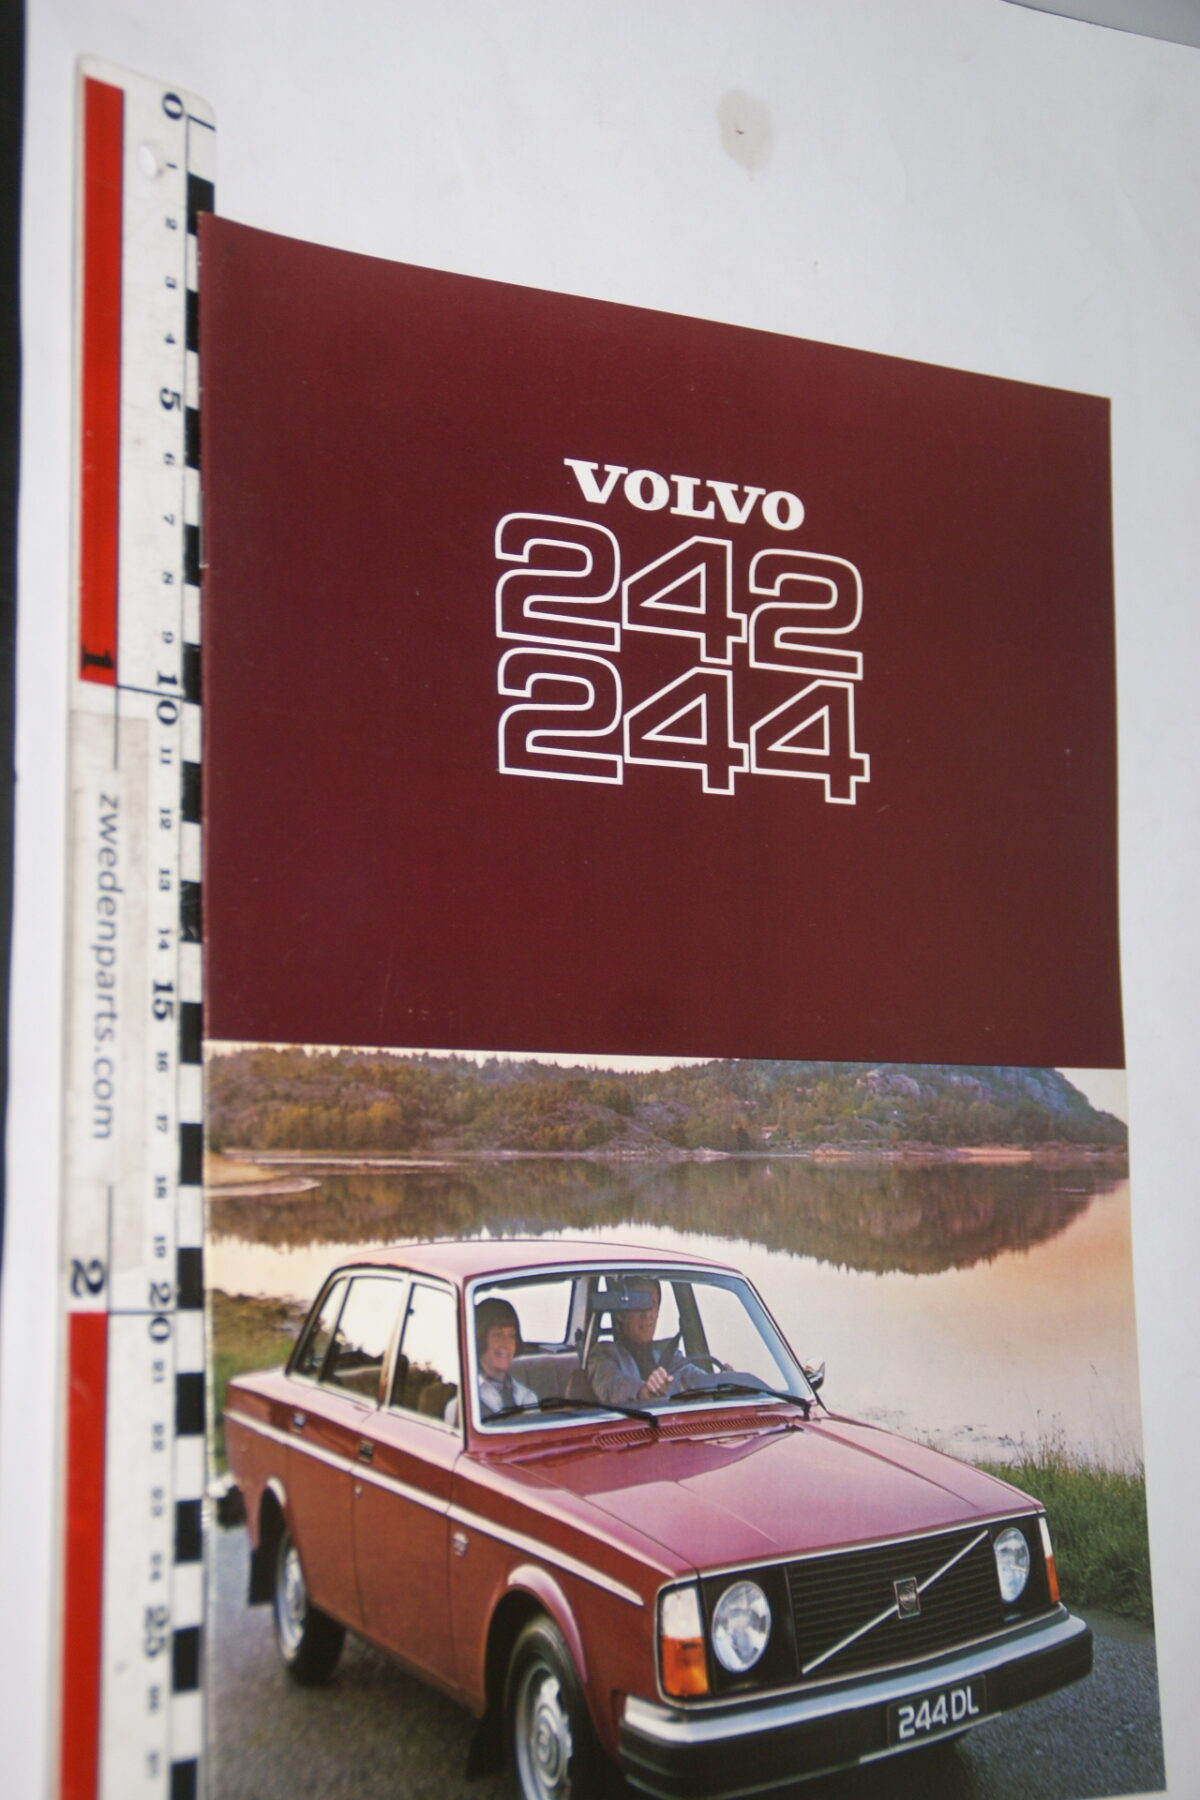 DSC08286 1977 Brochure Volvo 242 244 RSPPV 4031 Vlaams-10c0cd2b